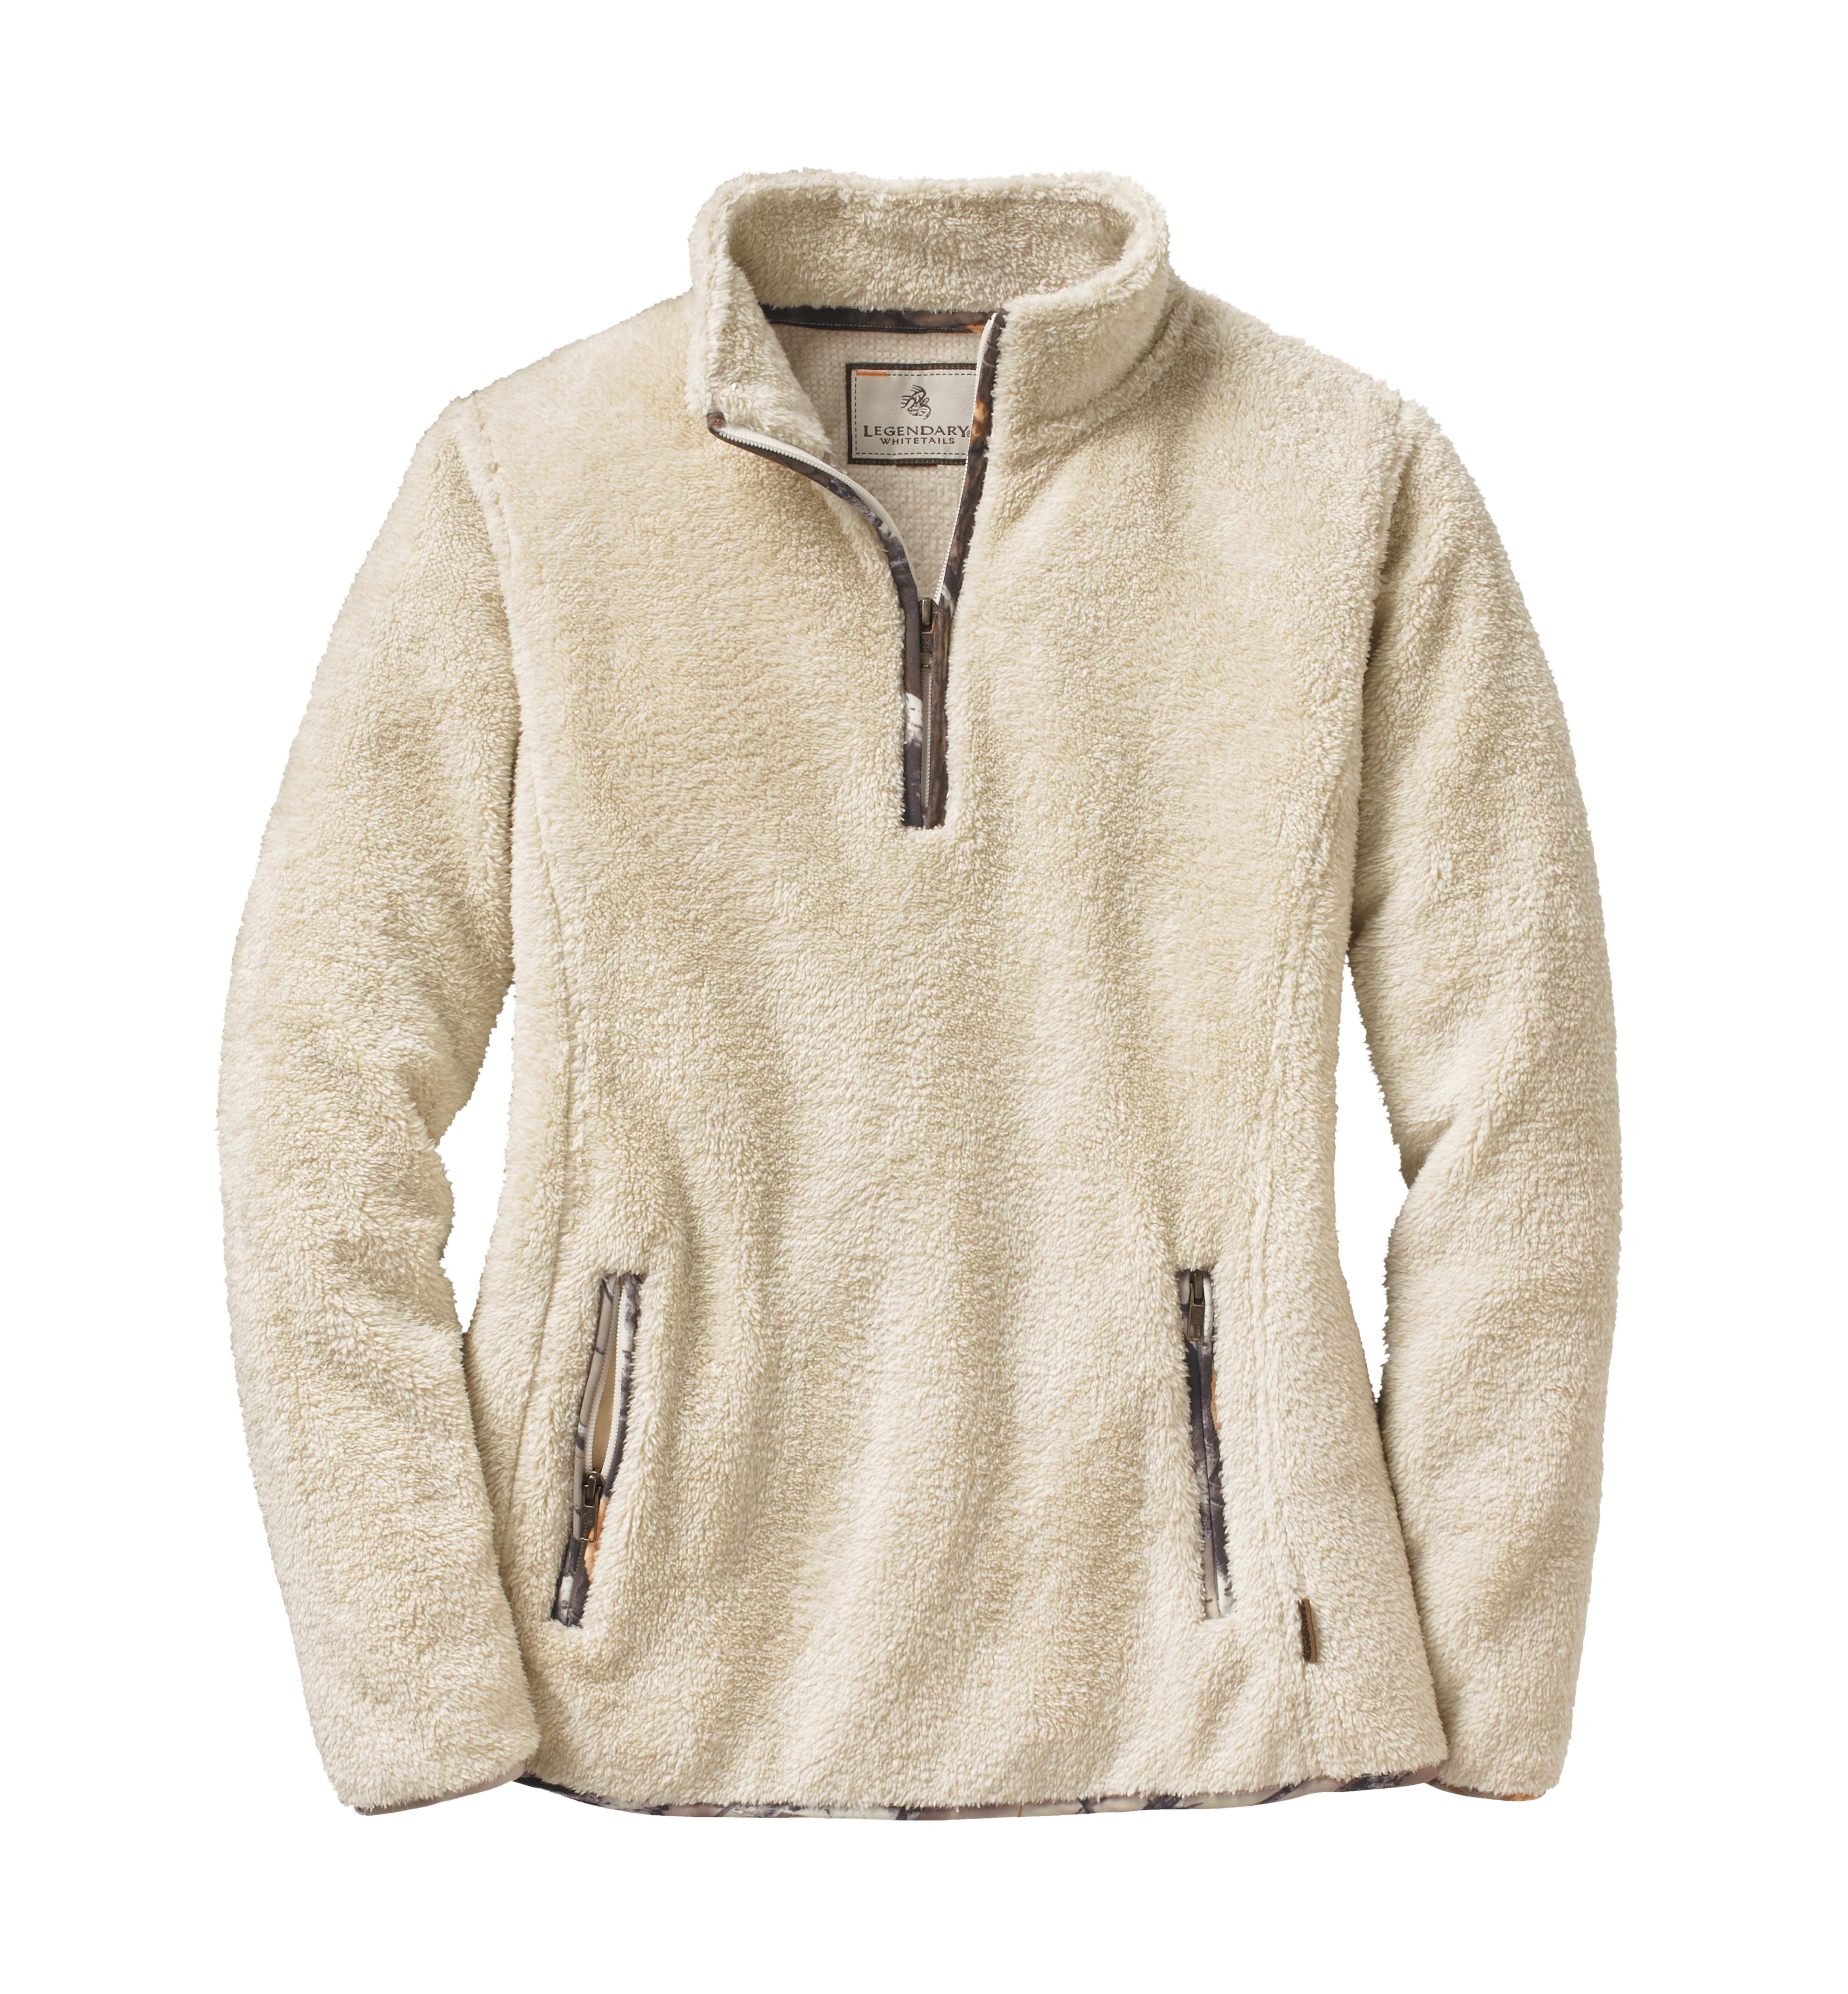 Why Its Good To Pull Over To Side Of >> We Love A Good Quarter Zip Pullover And This One Tops The List